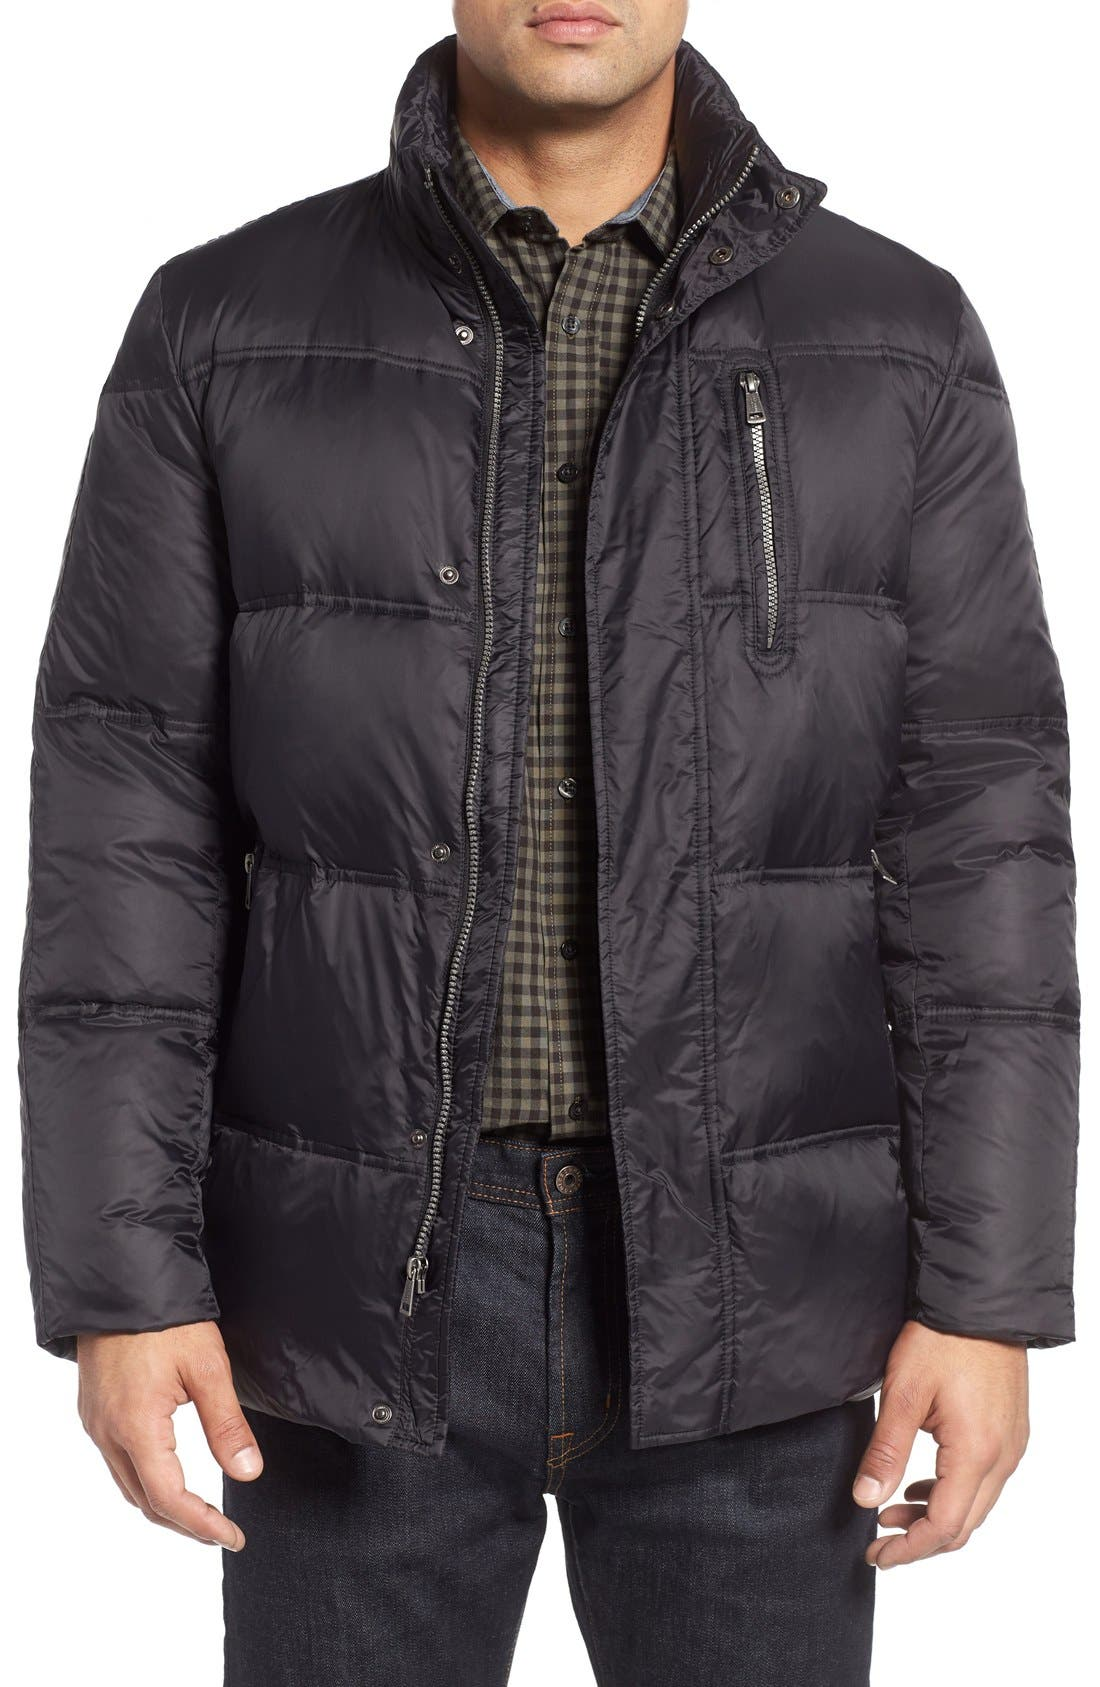 Quilted Jacket with Convertible Neck Pillow,                             Main thumbnail 1, color,                             Black